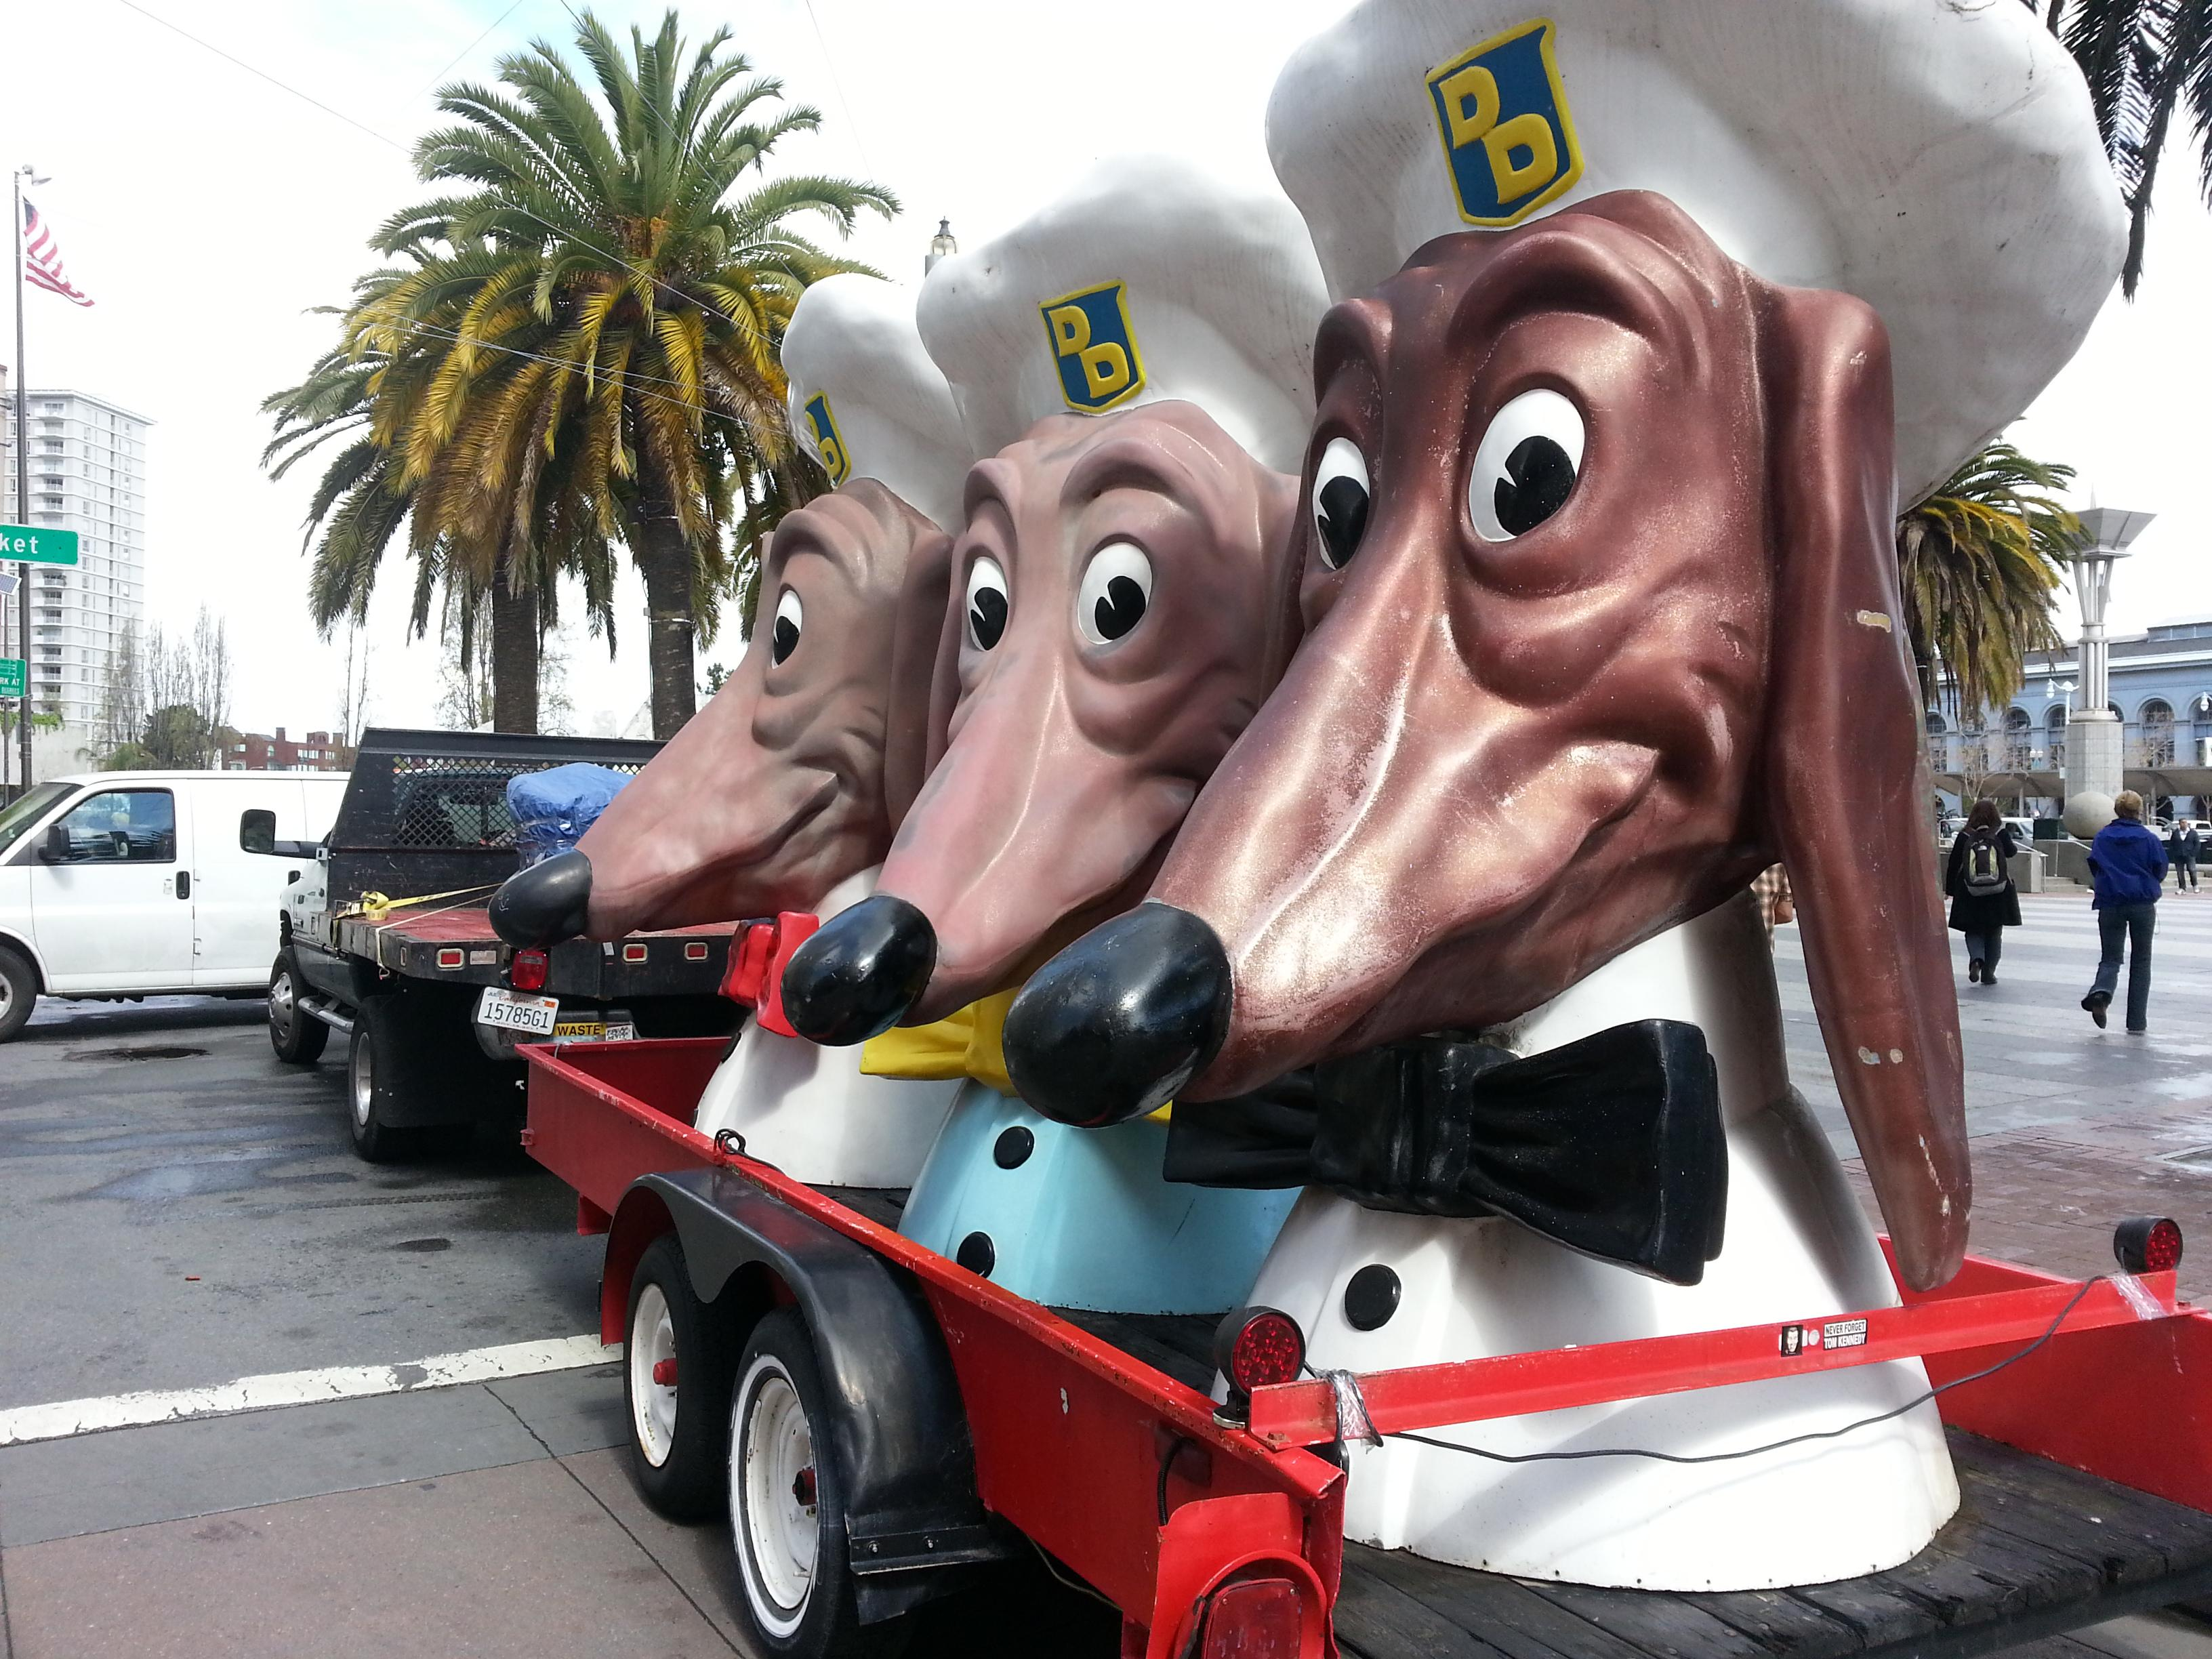 Hundreds Turn Out For St. Stupid's Day Parade